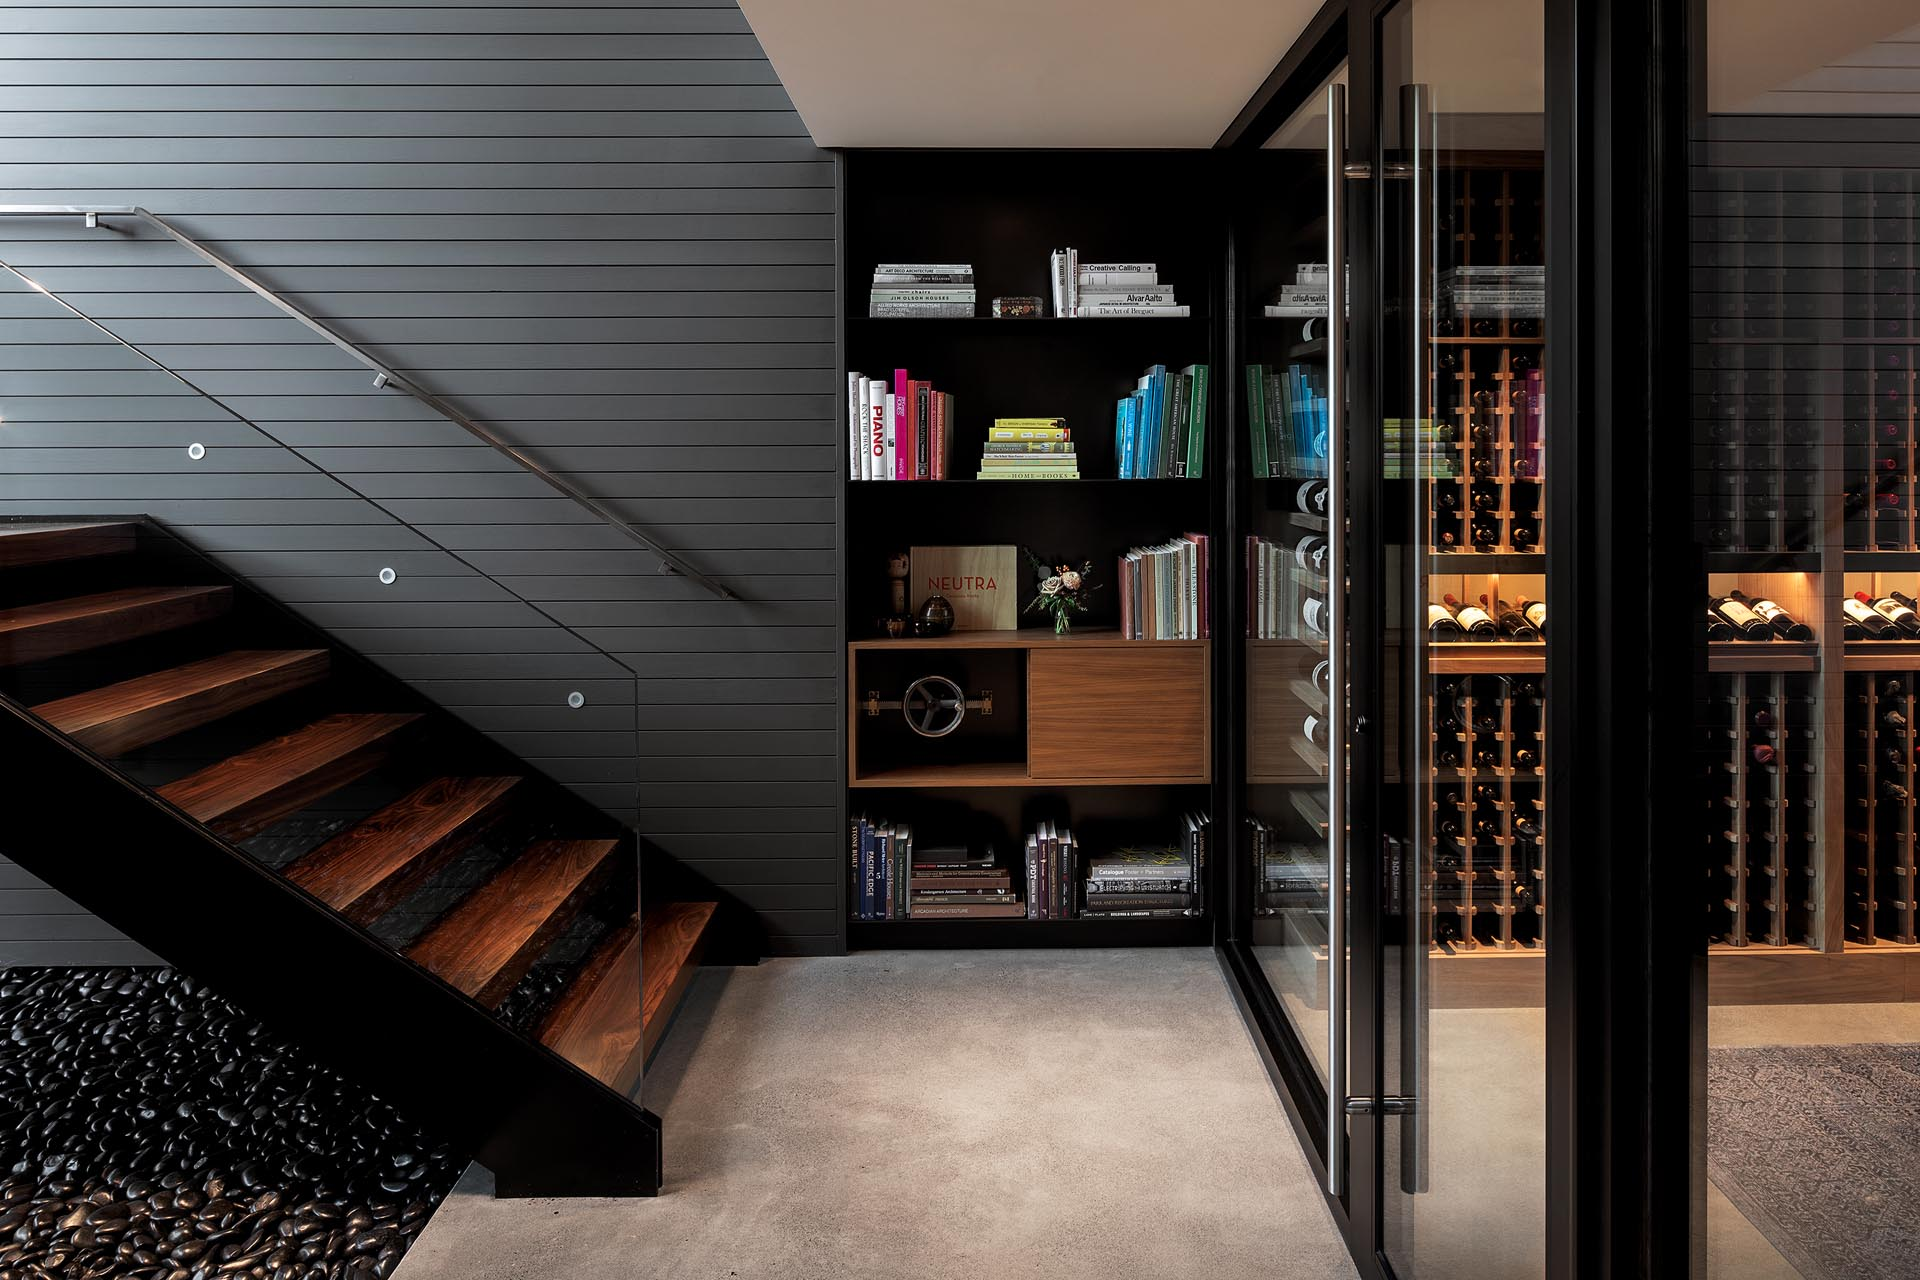 This modern house has a hidden whiskey room - accessed through a secret latch in the bookshelf at the bottom of the stairs.